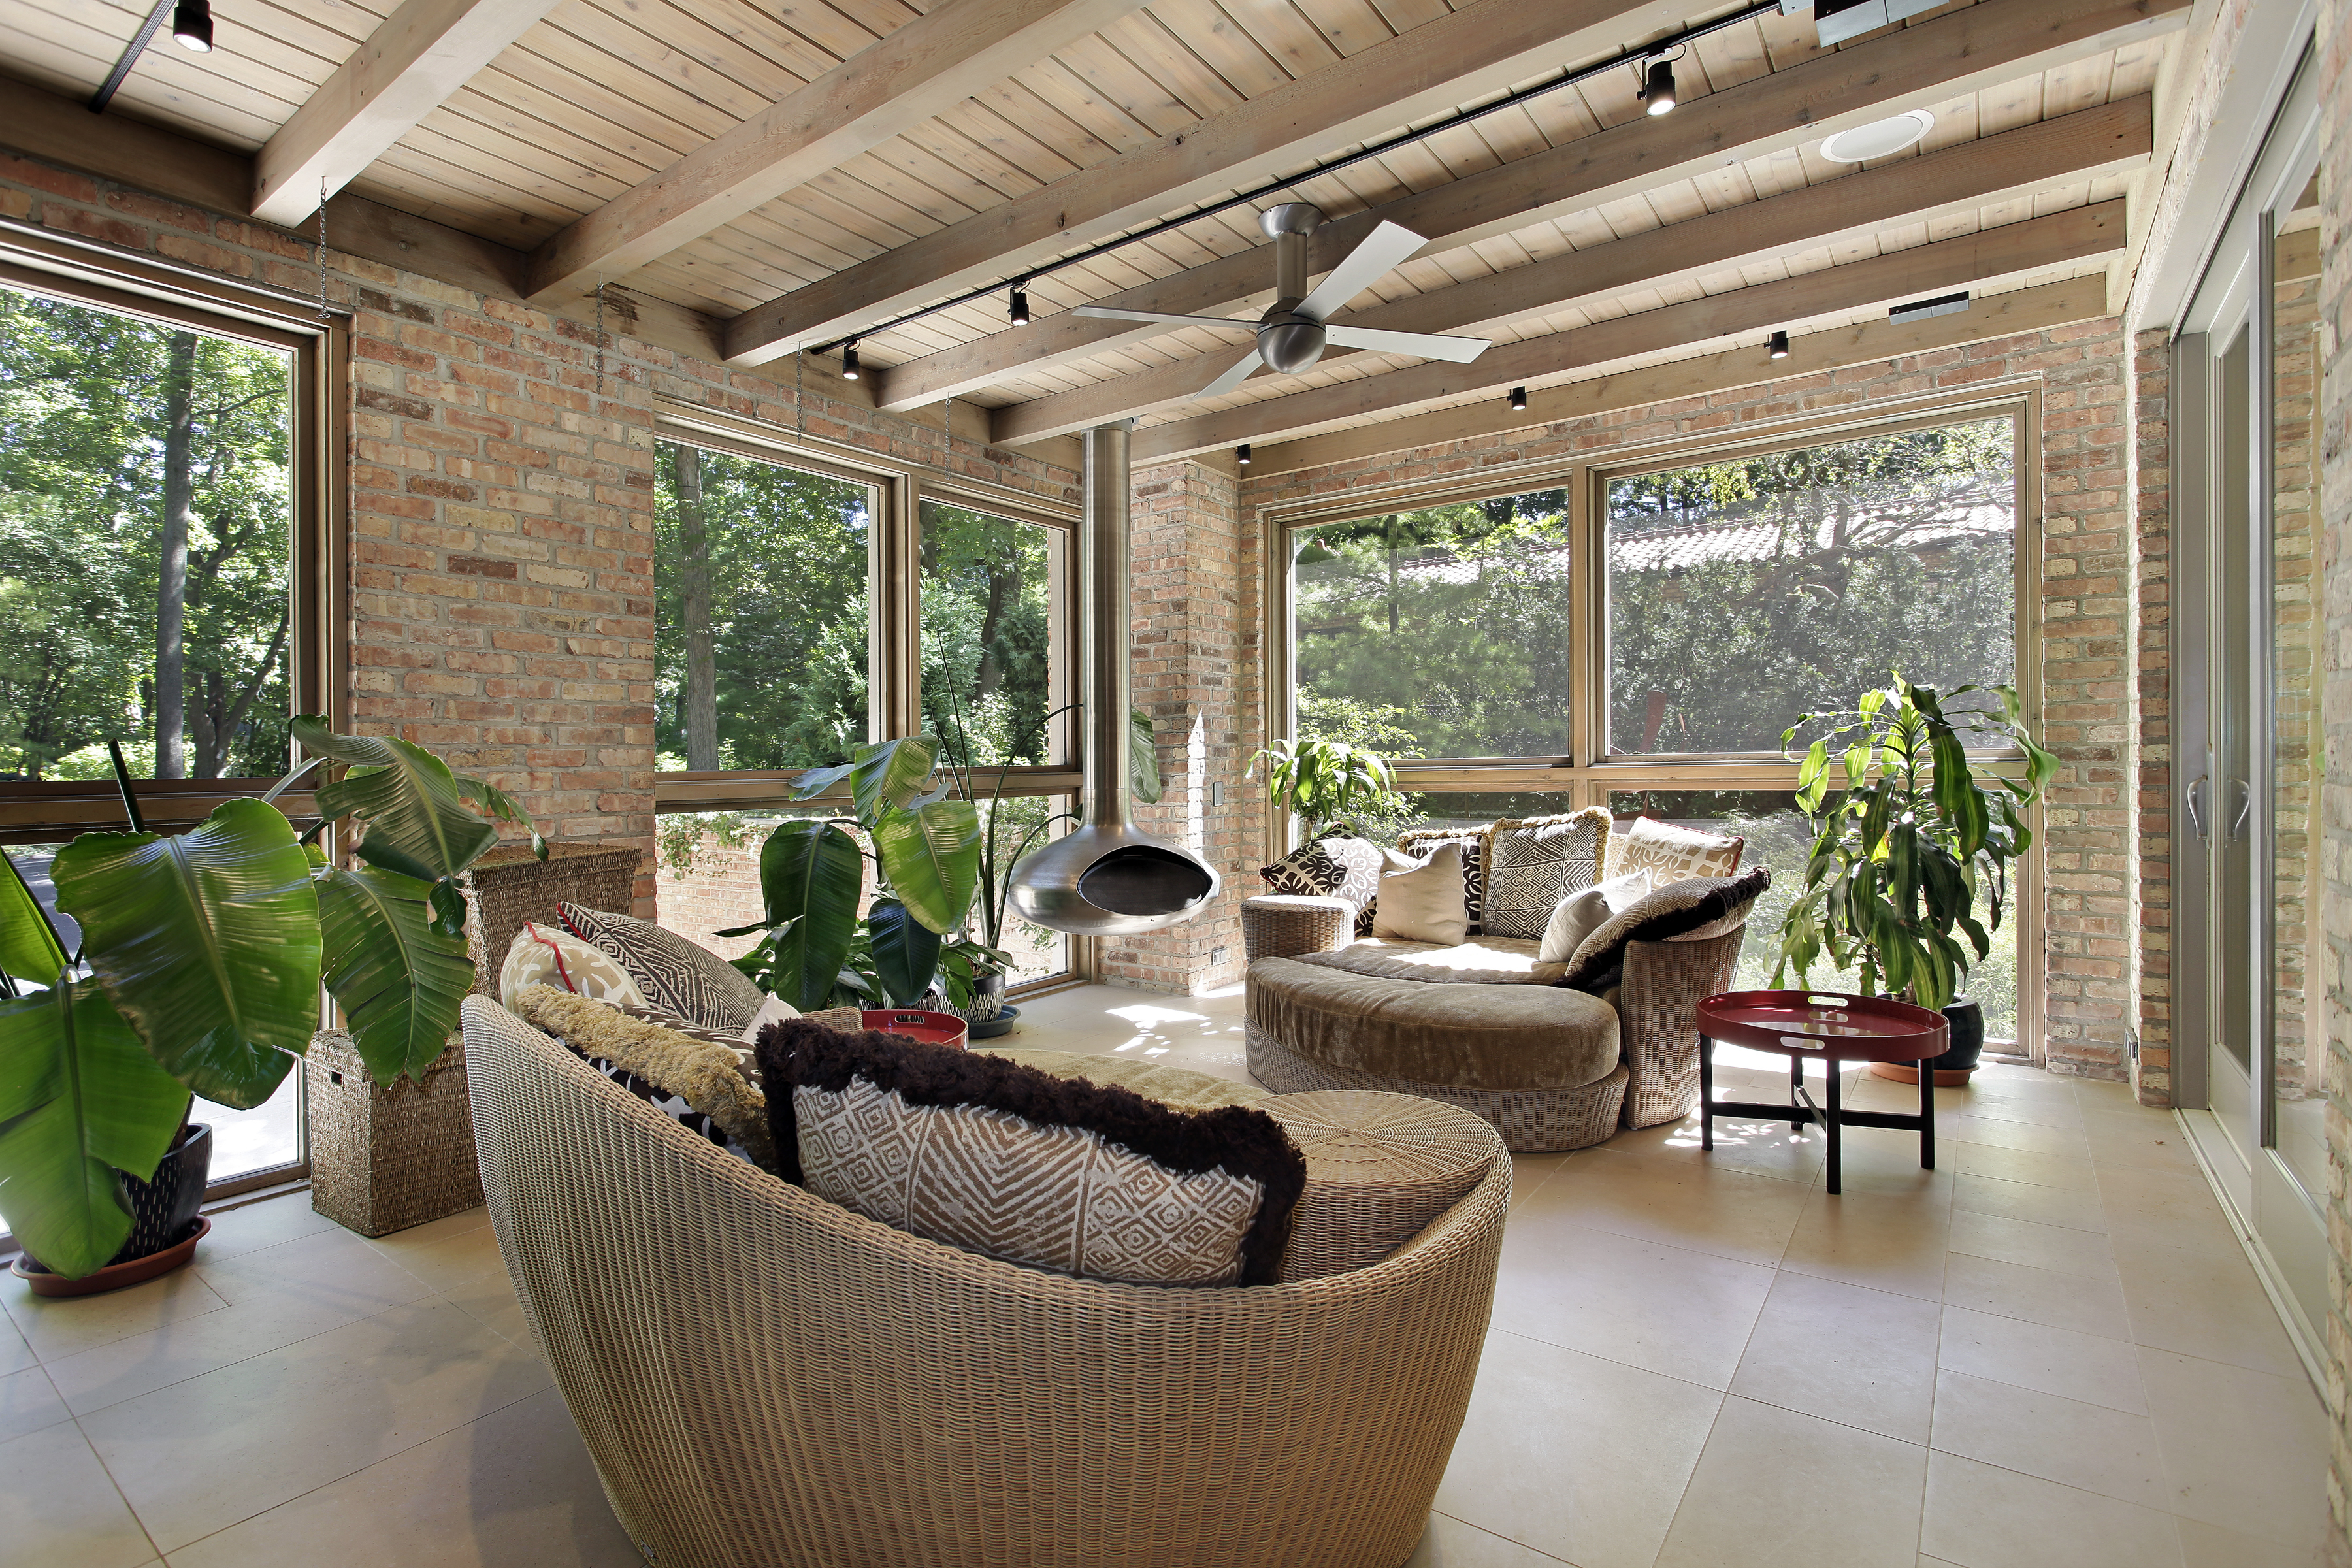 bigstock-Sunroom-in-luxury-home-with-wi-18131345.jpg